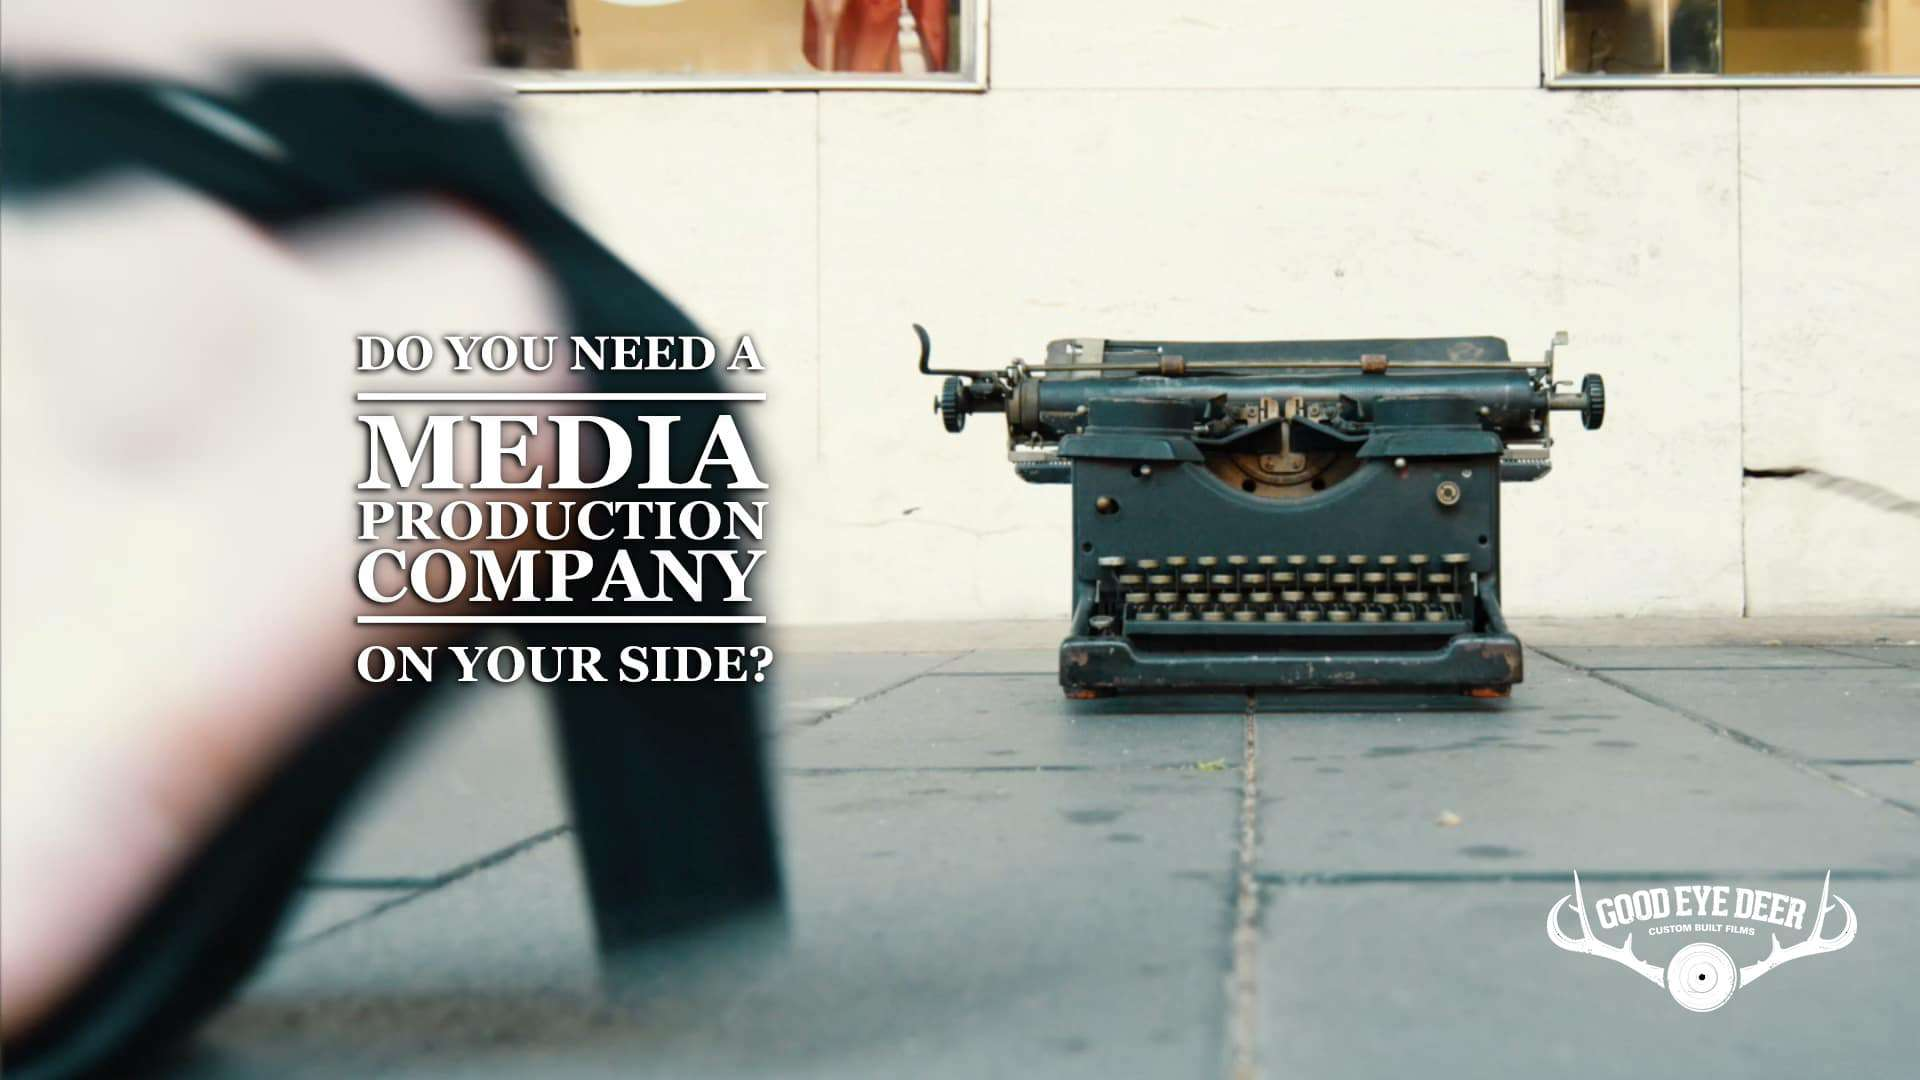 Sydney Media Production Company - Good Eye Deer